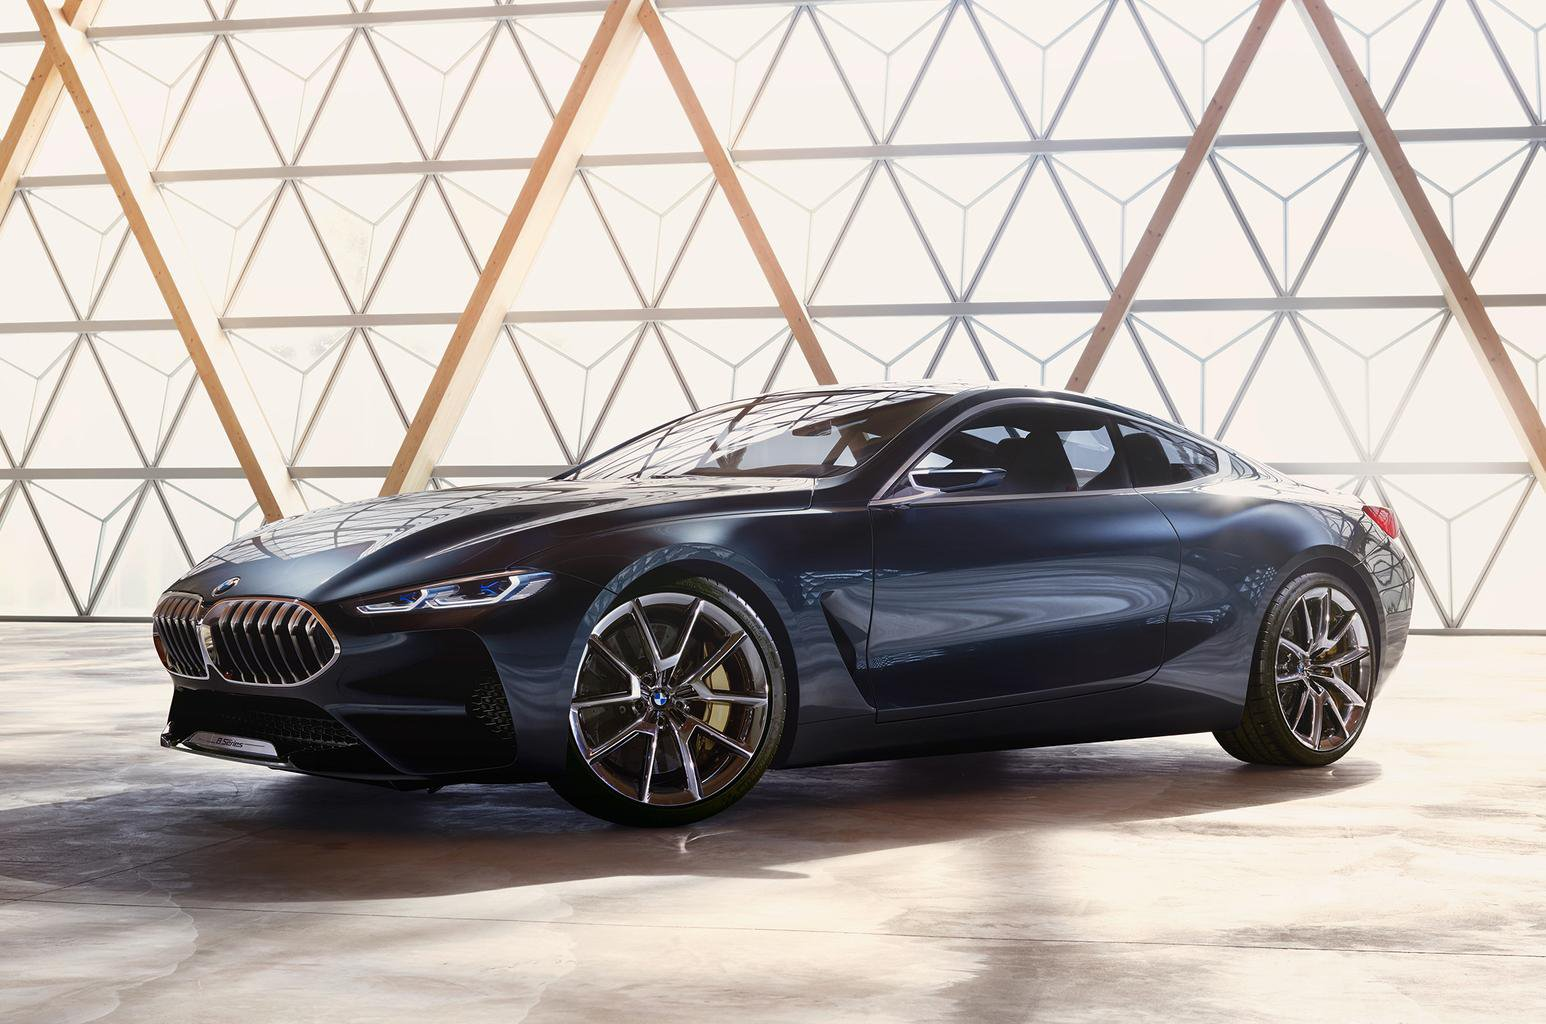 BMW 8 Series coupé revealed